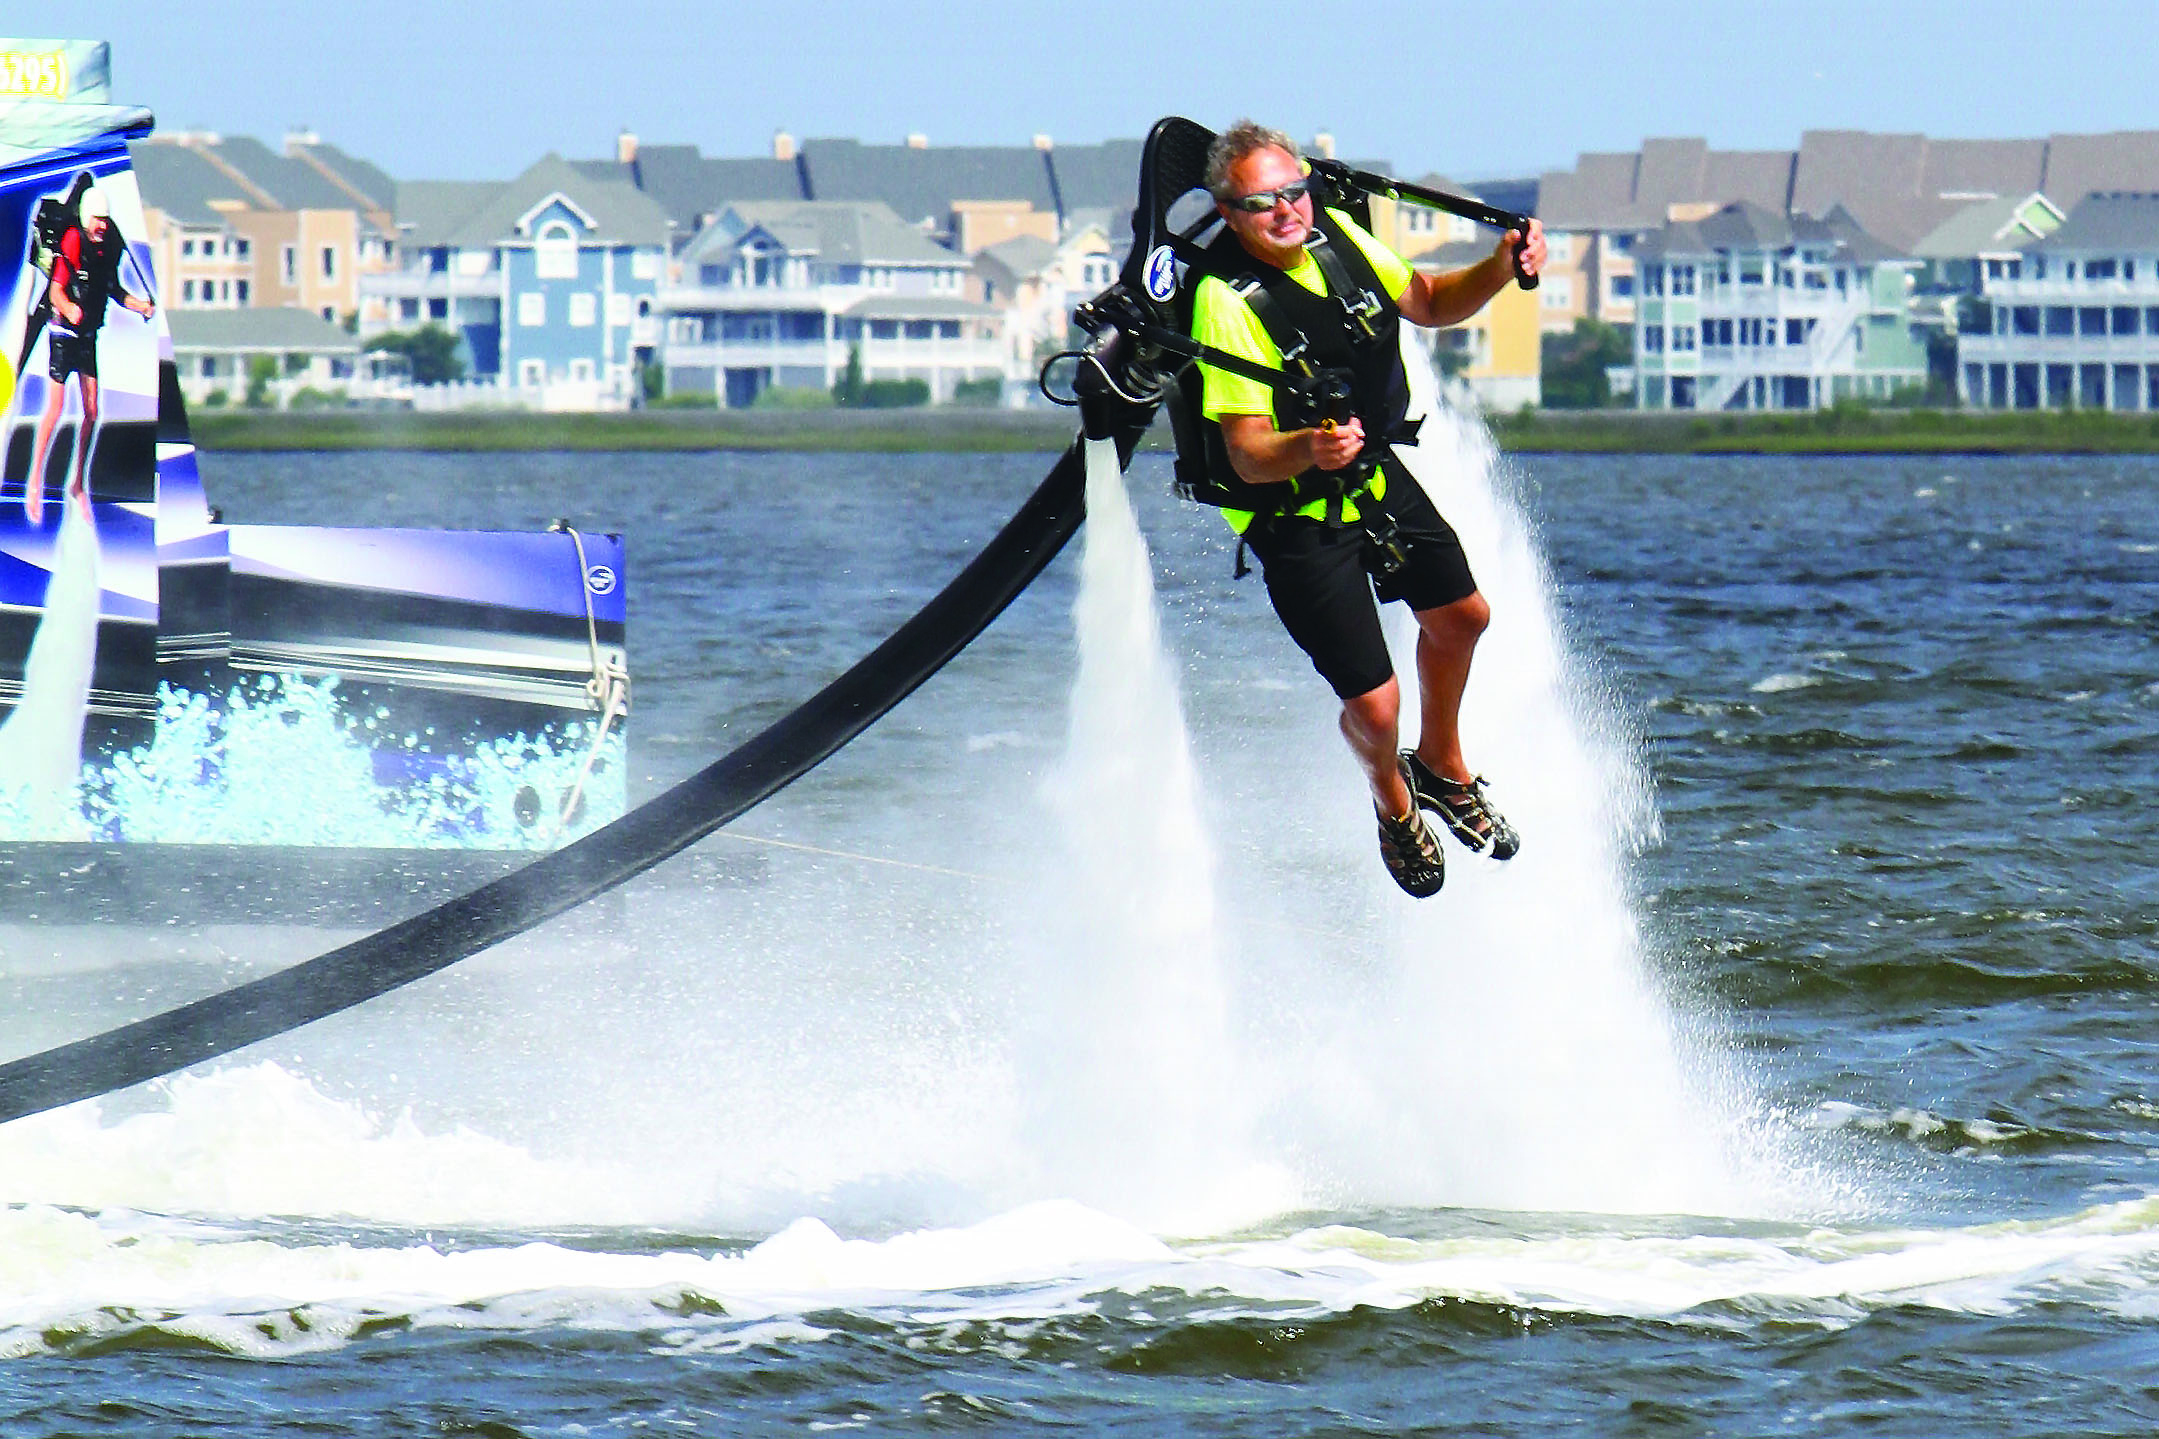 Kitty Hawk Kites Jet Pack Adventrue